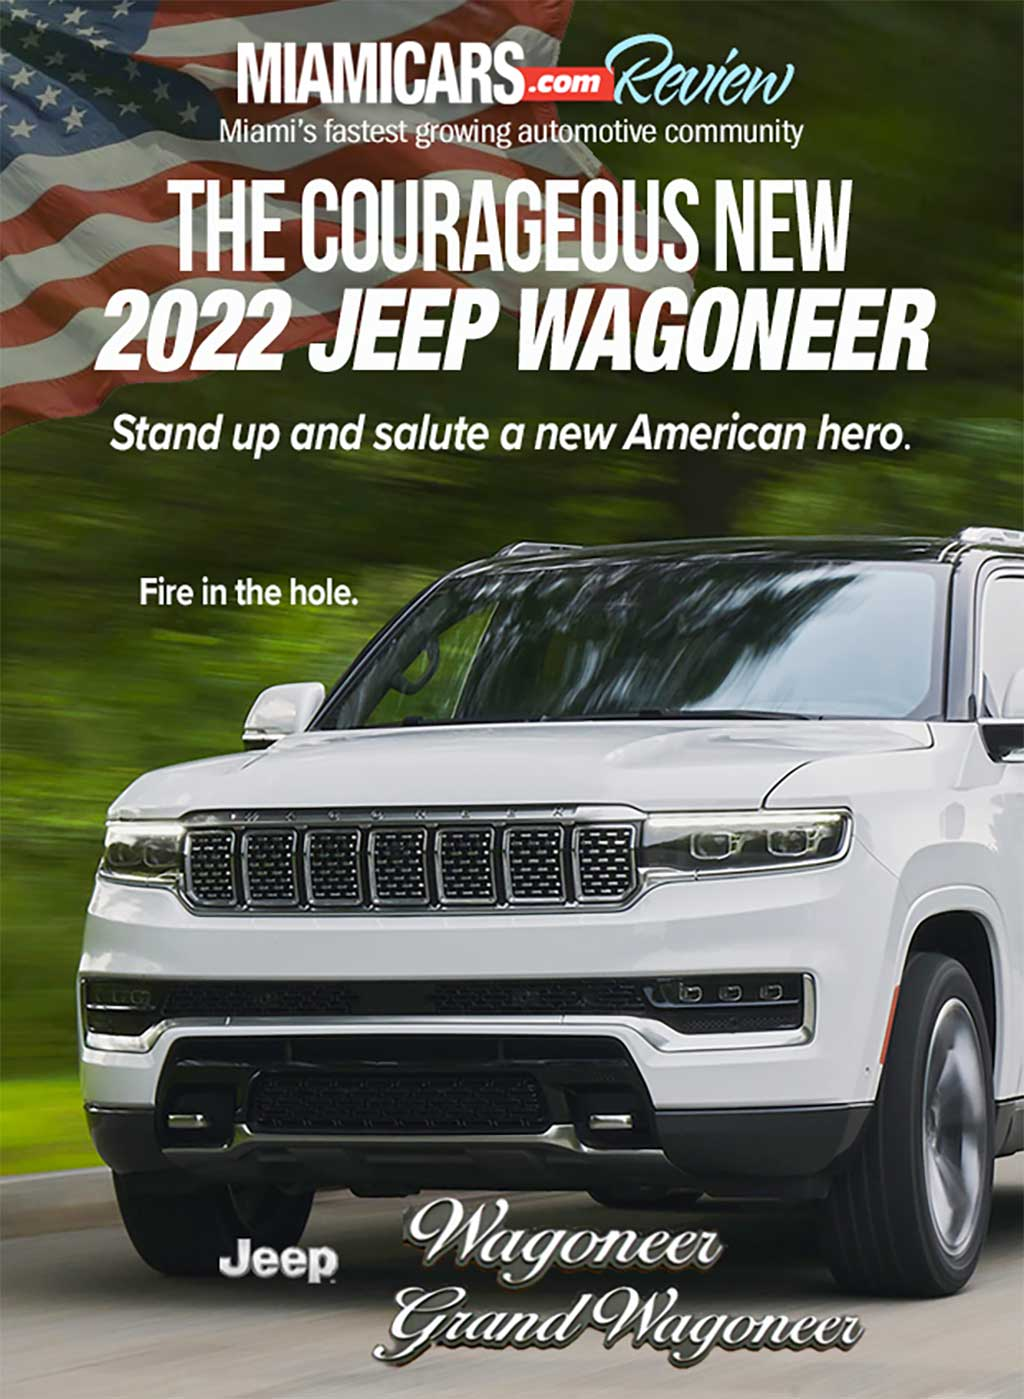 The Courageous New 2022 Jeep Wagoneer